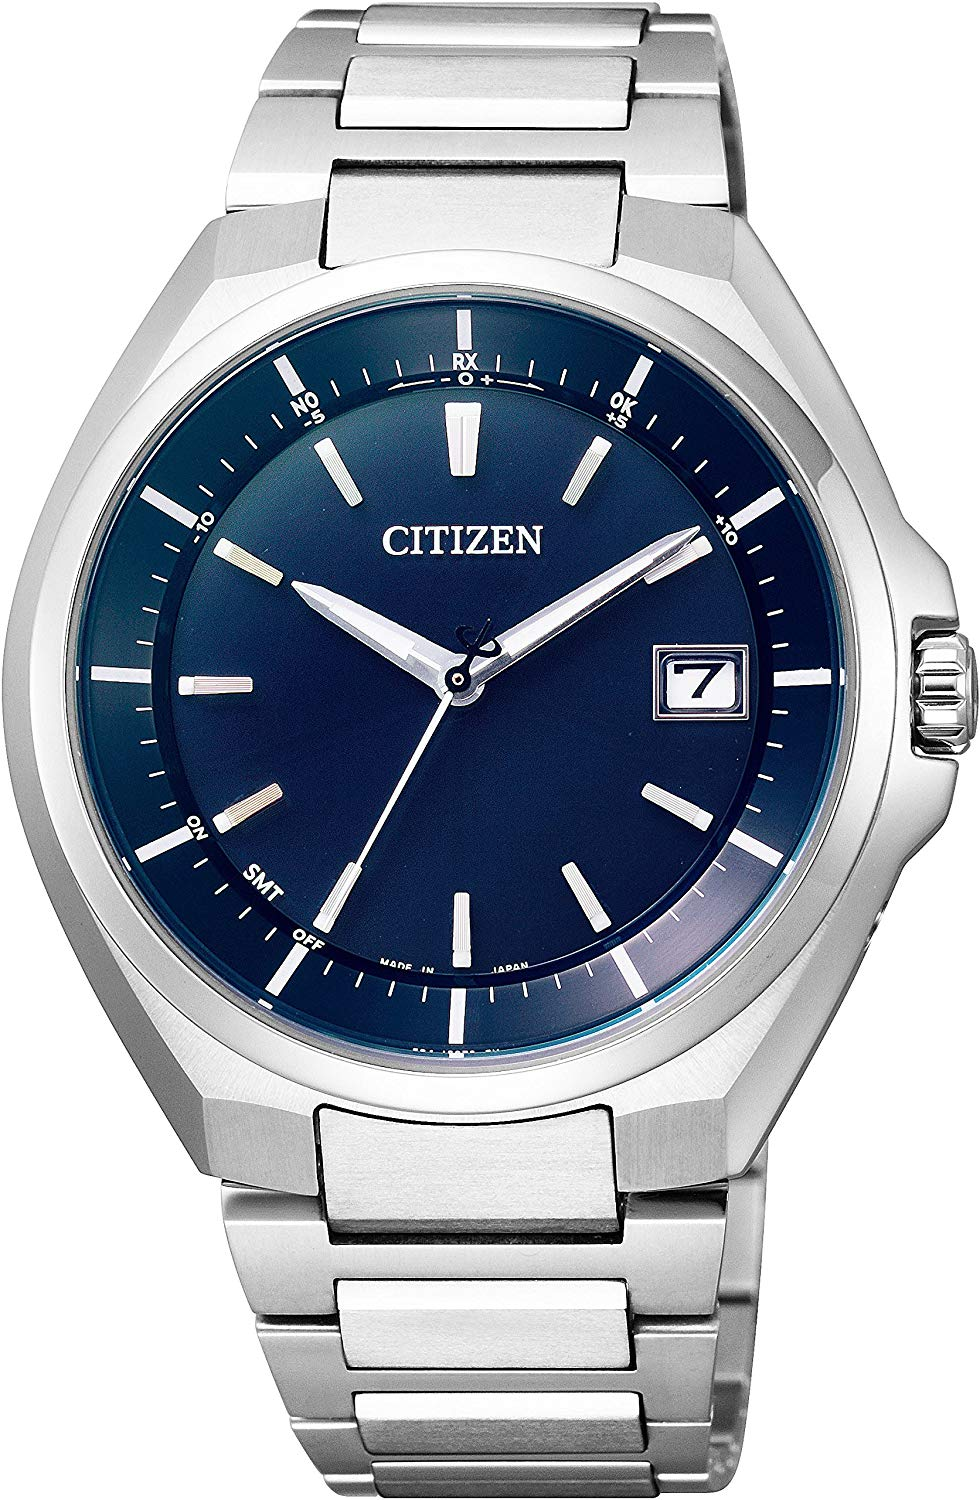 CITIZENのATTESA CB3010-57L